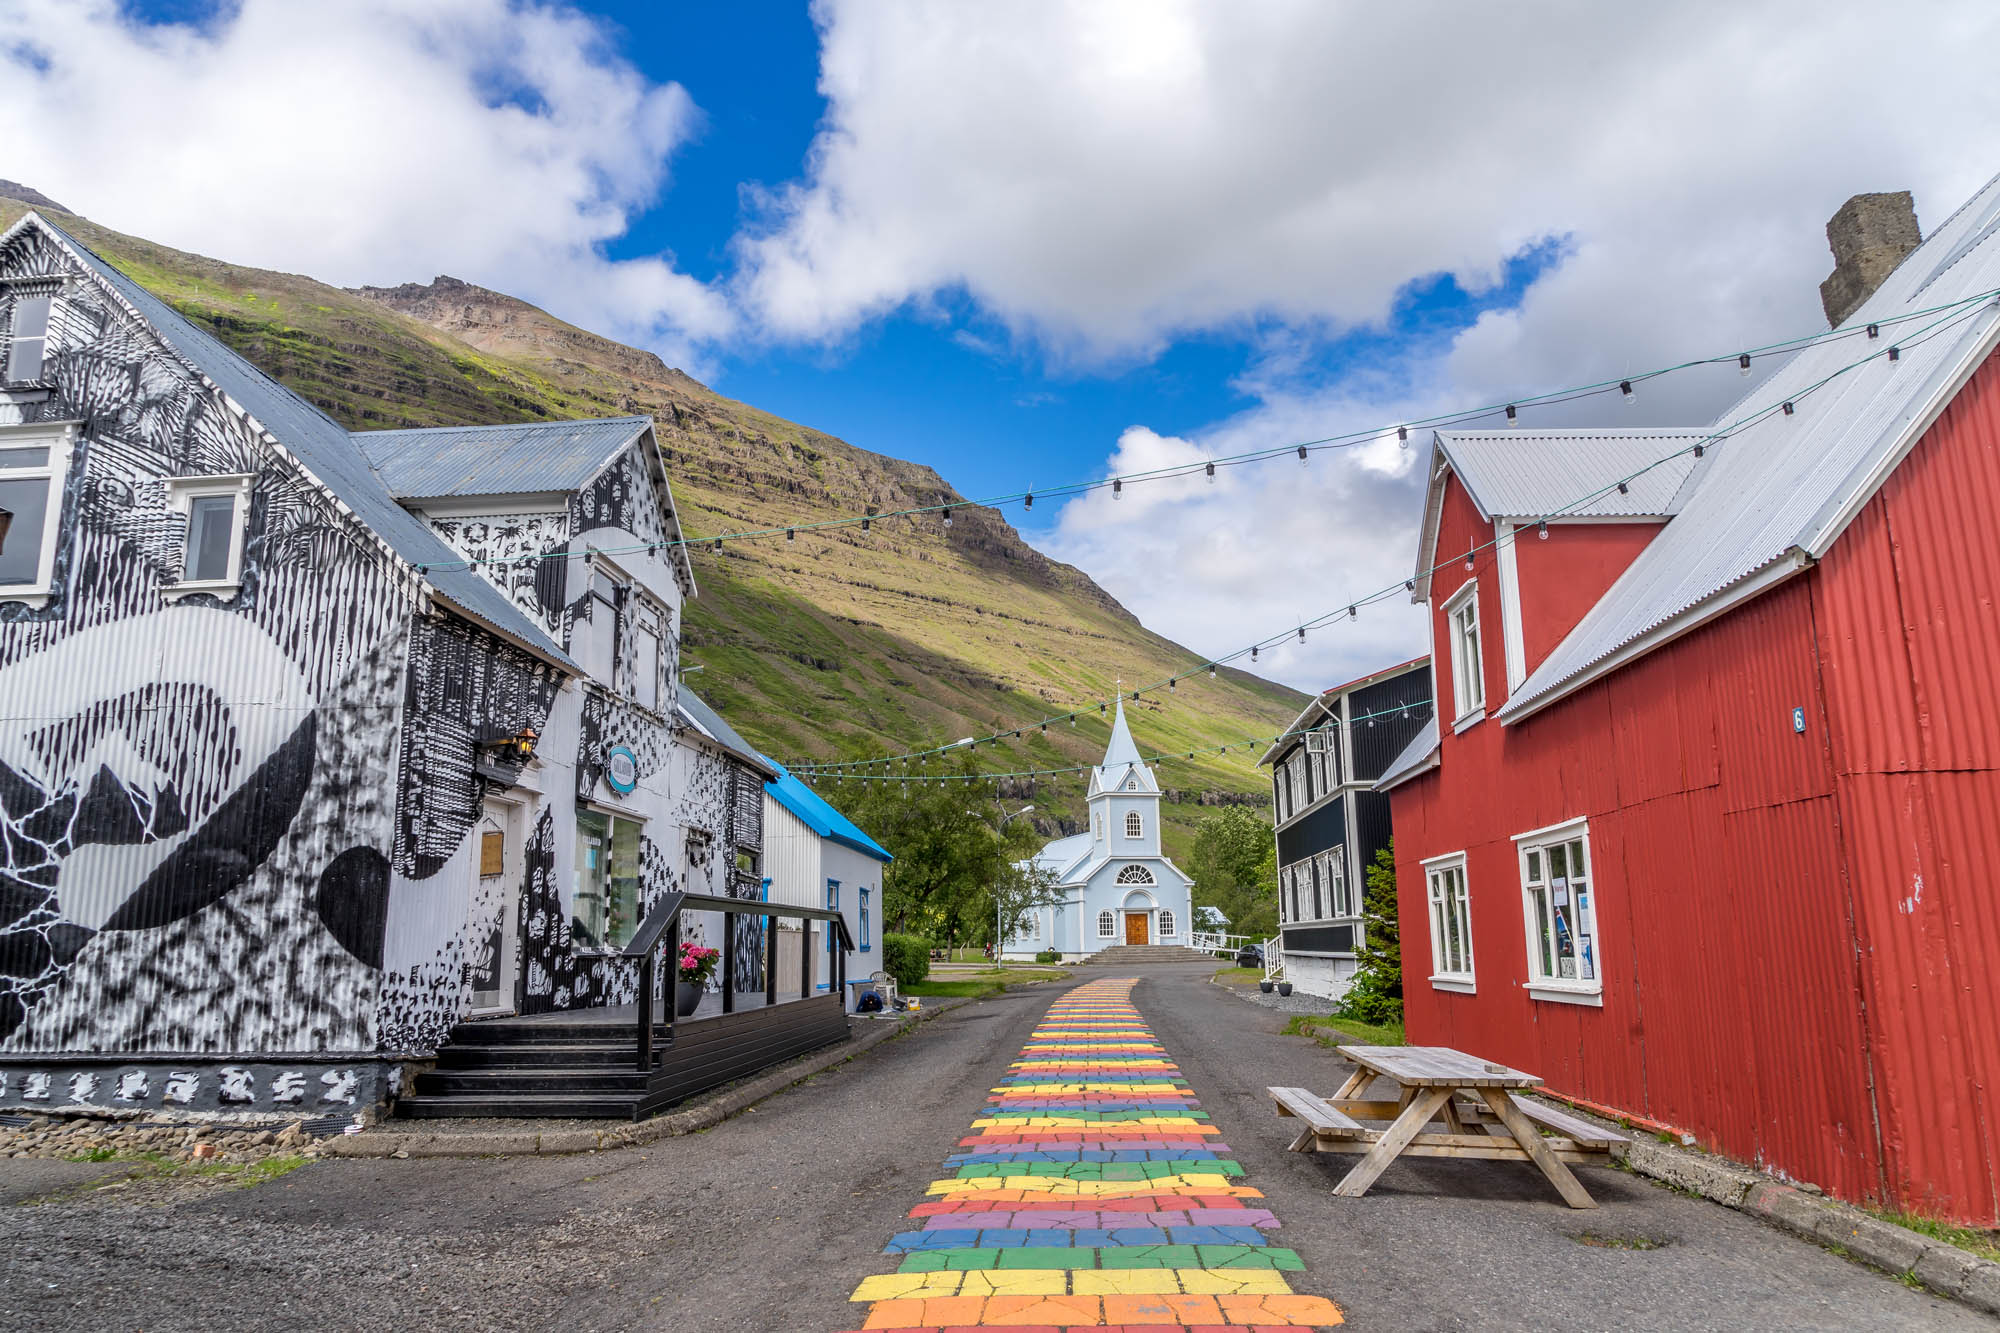 Small typical town in Iceland